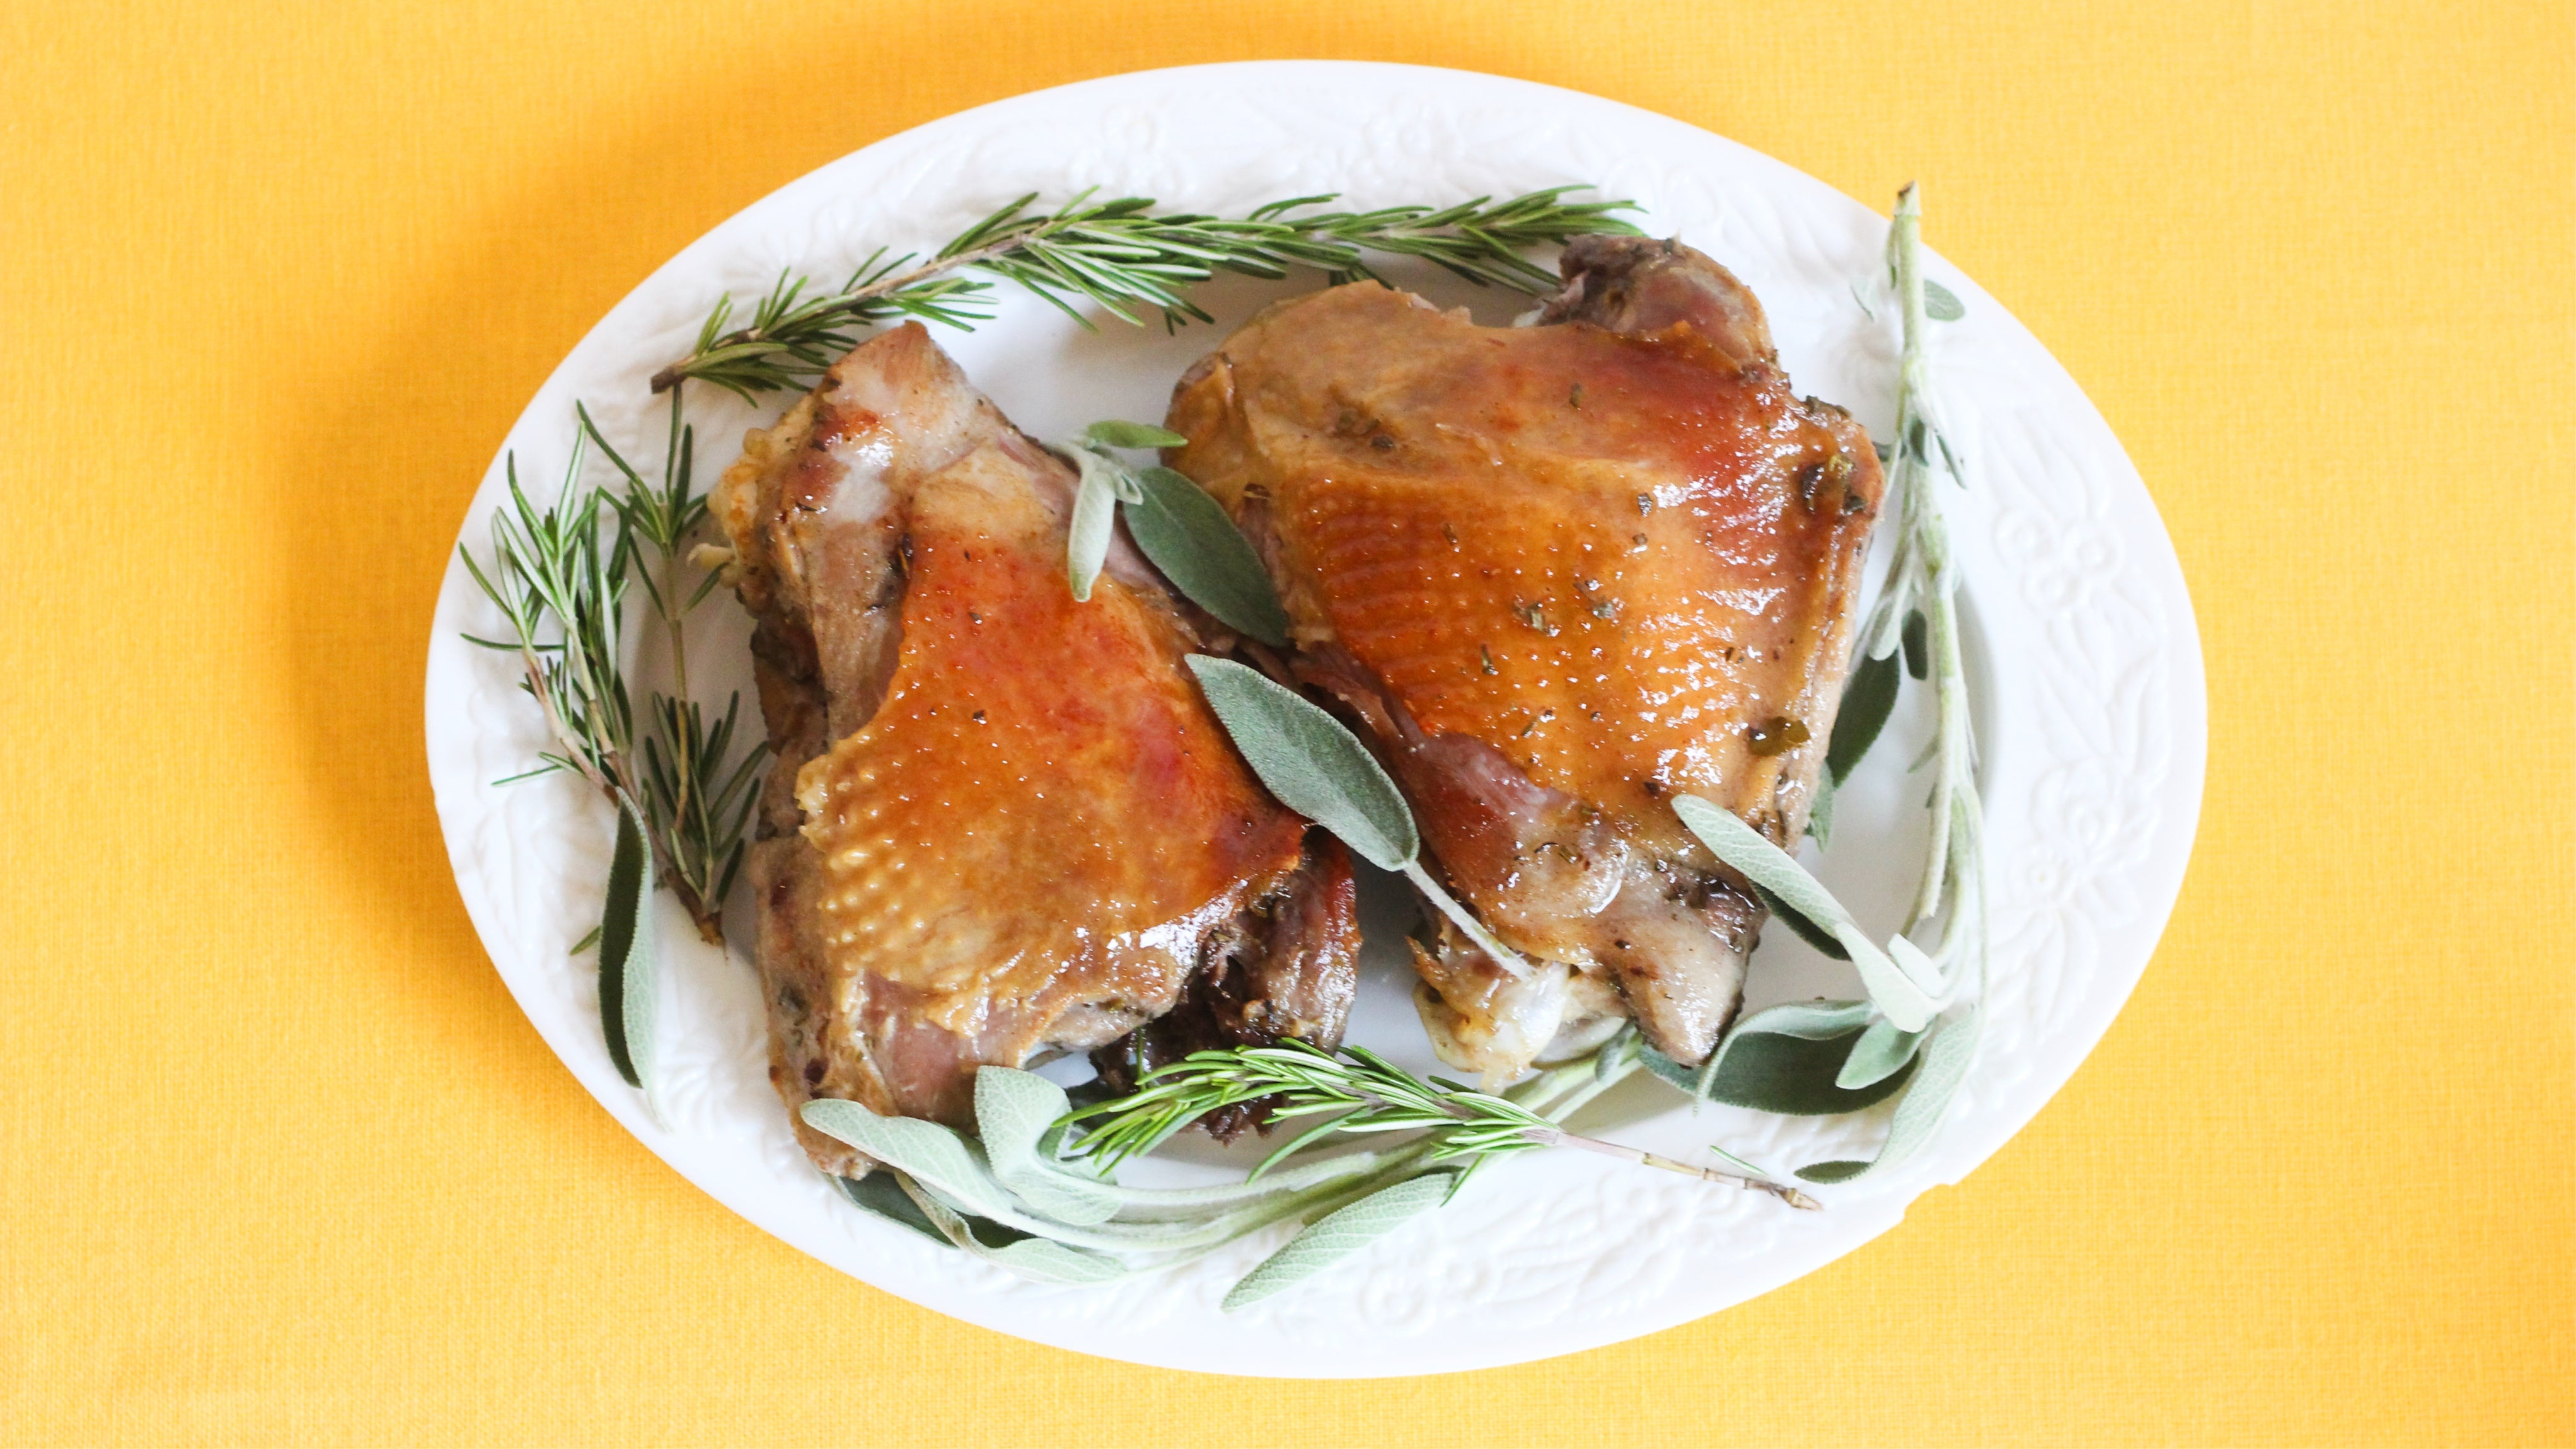 This Holidays, Confit Your Dark Meat